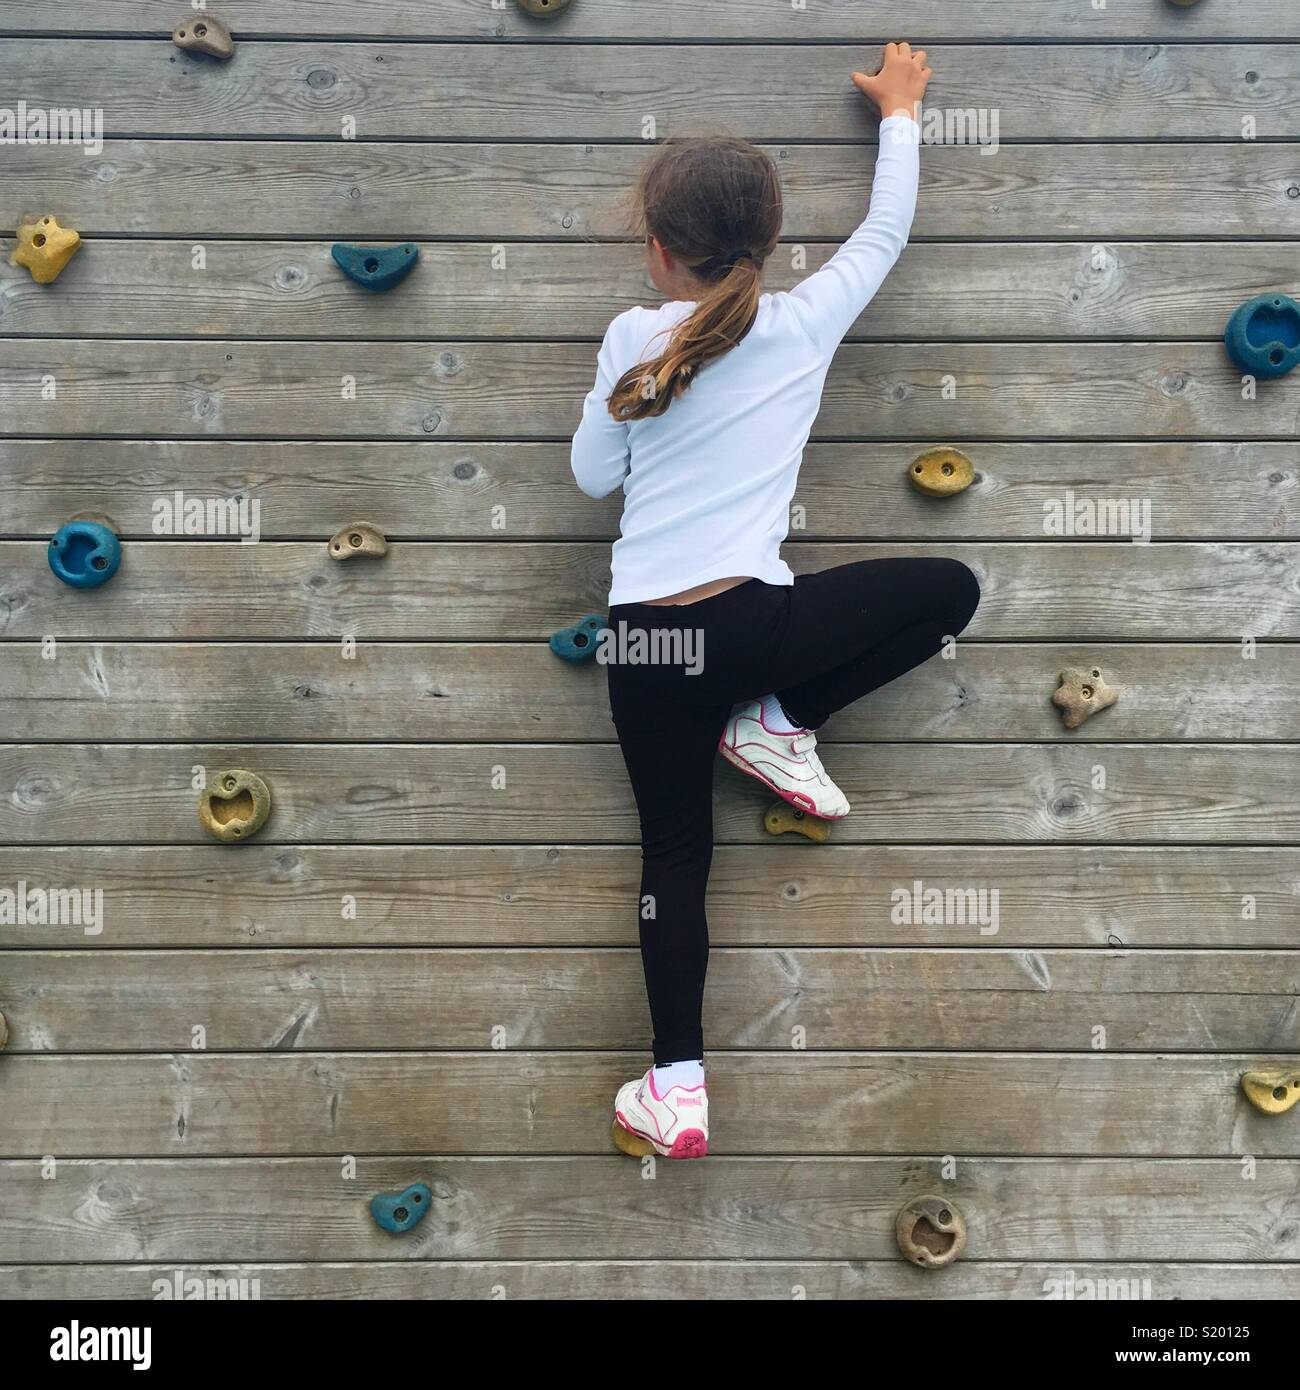 A girl on a playground climbing wall - Stock Image